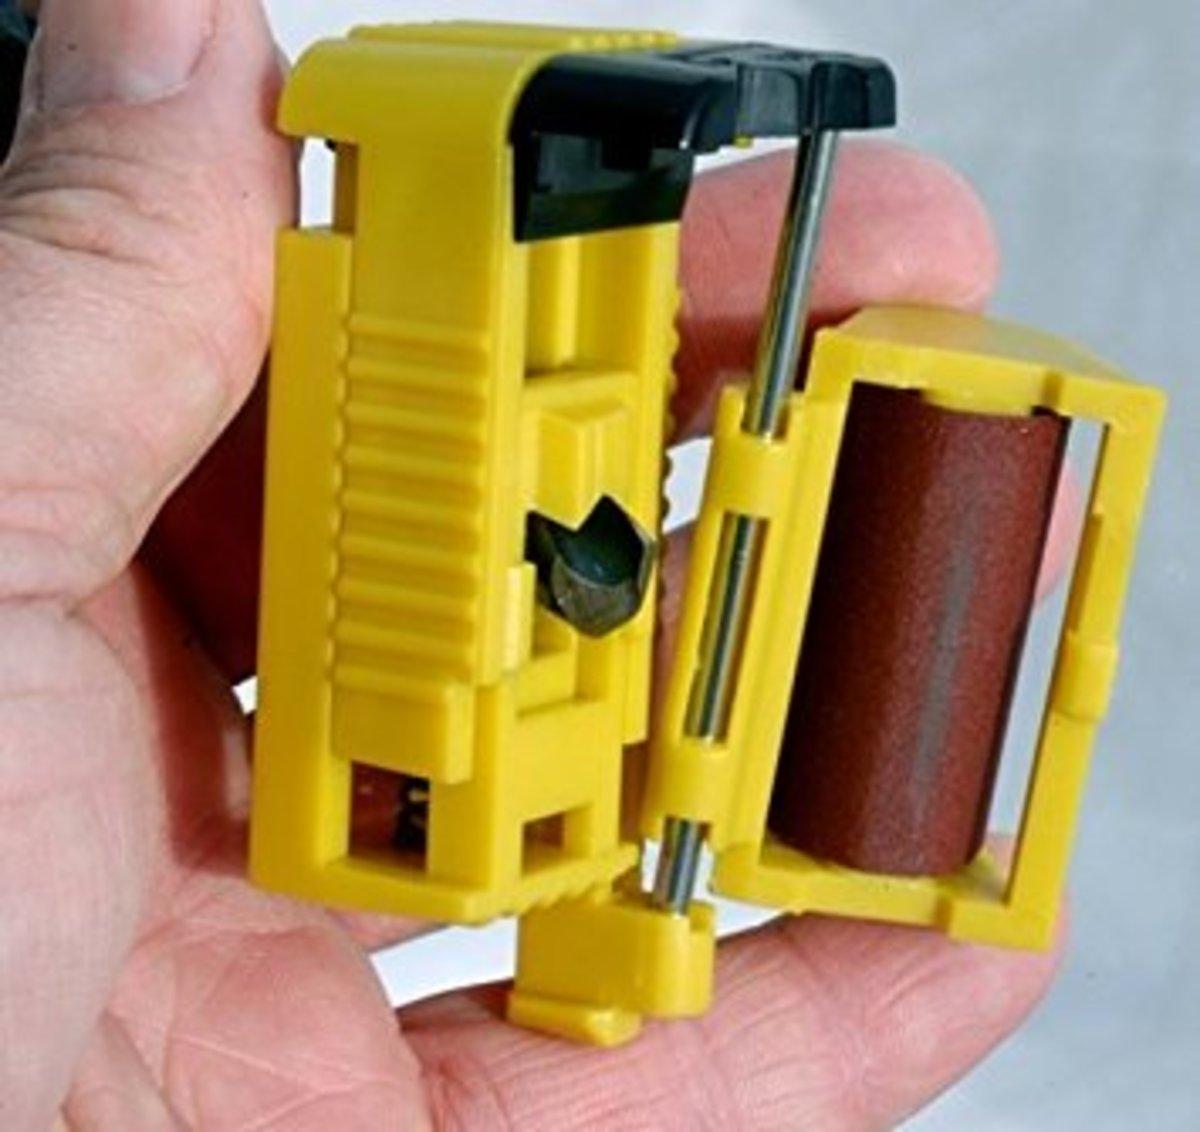 Prazi bit sharpener